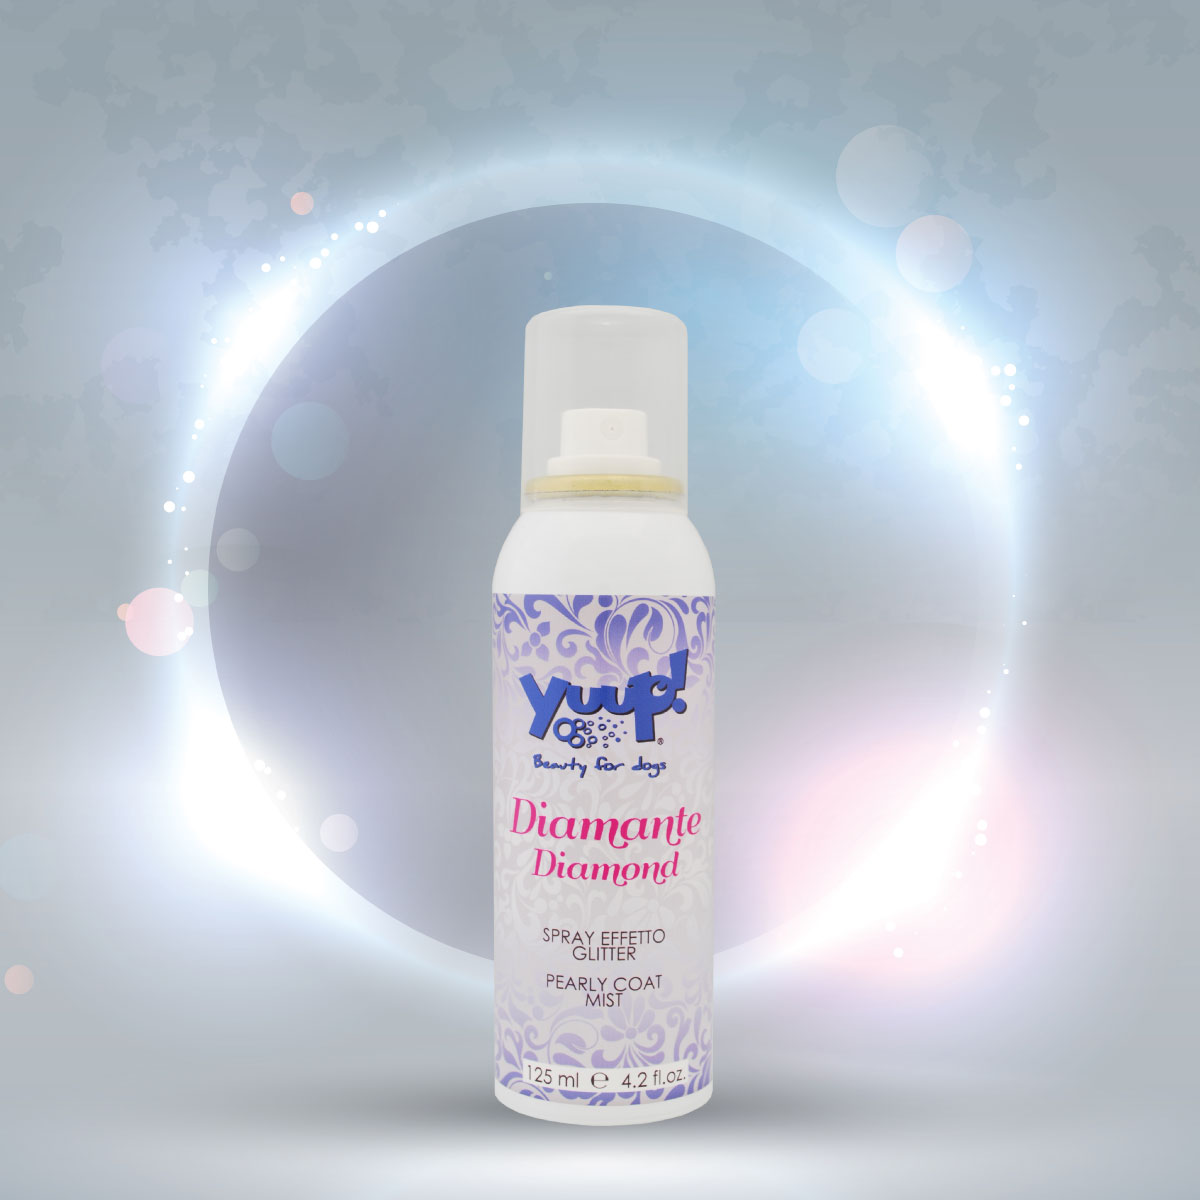 Yuup Diamond Pearly Coat Mist